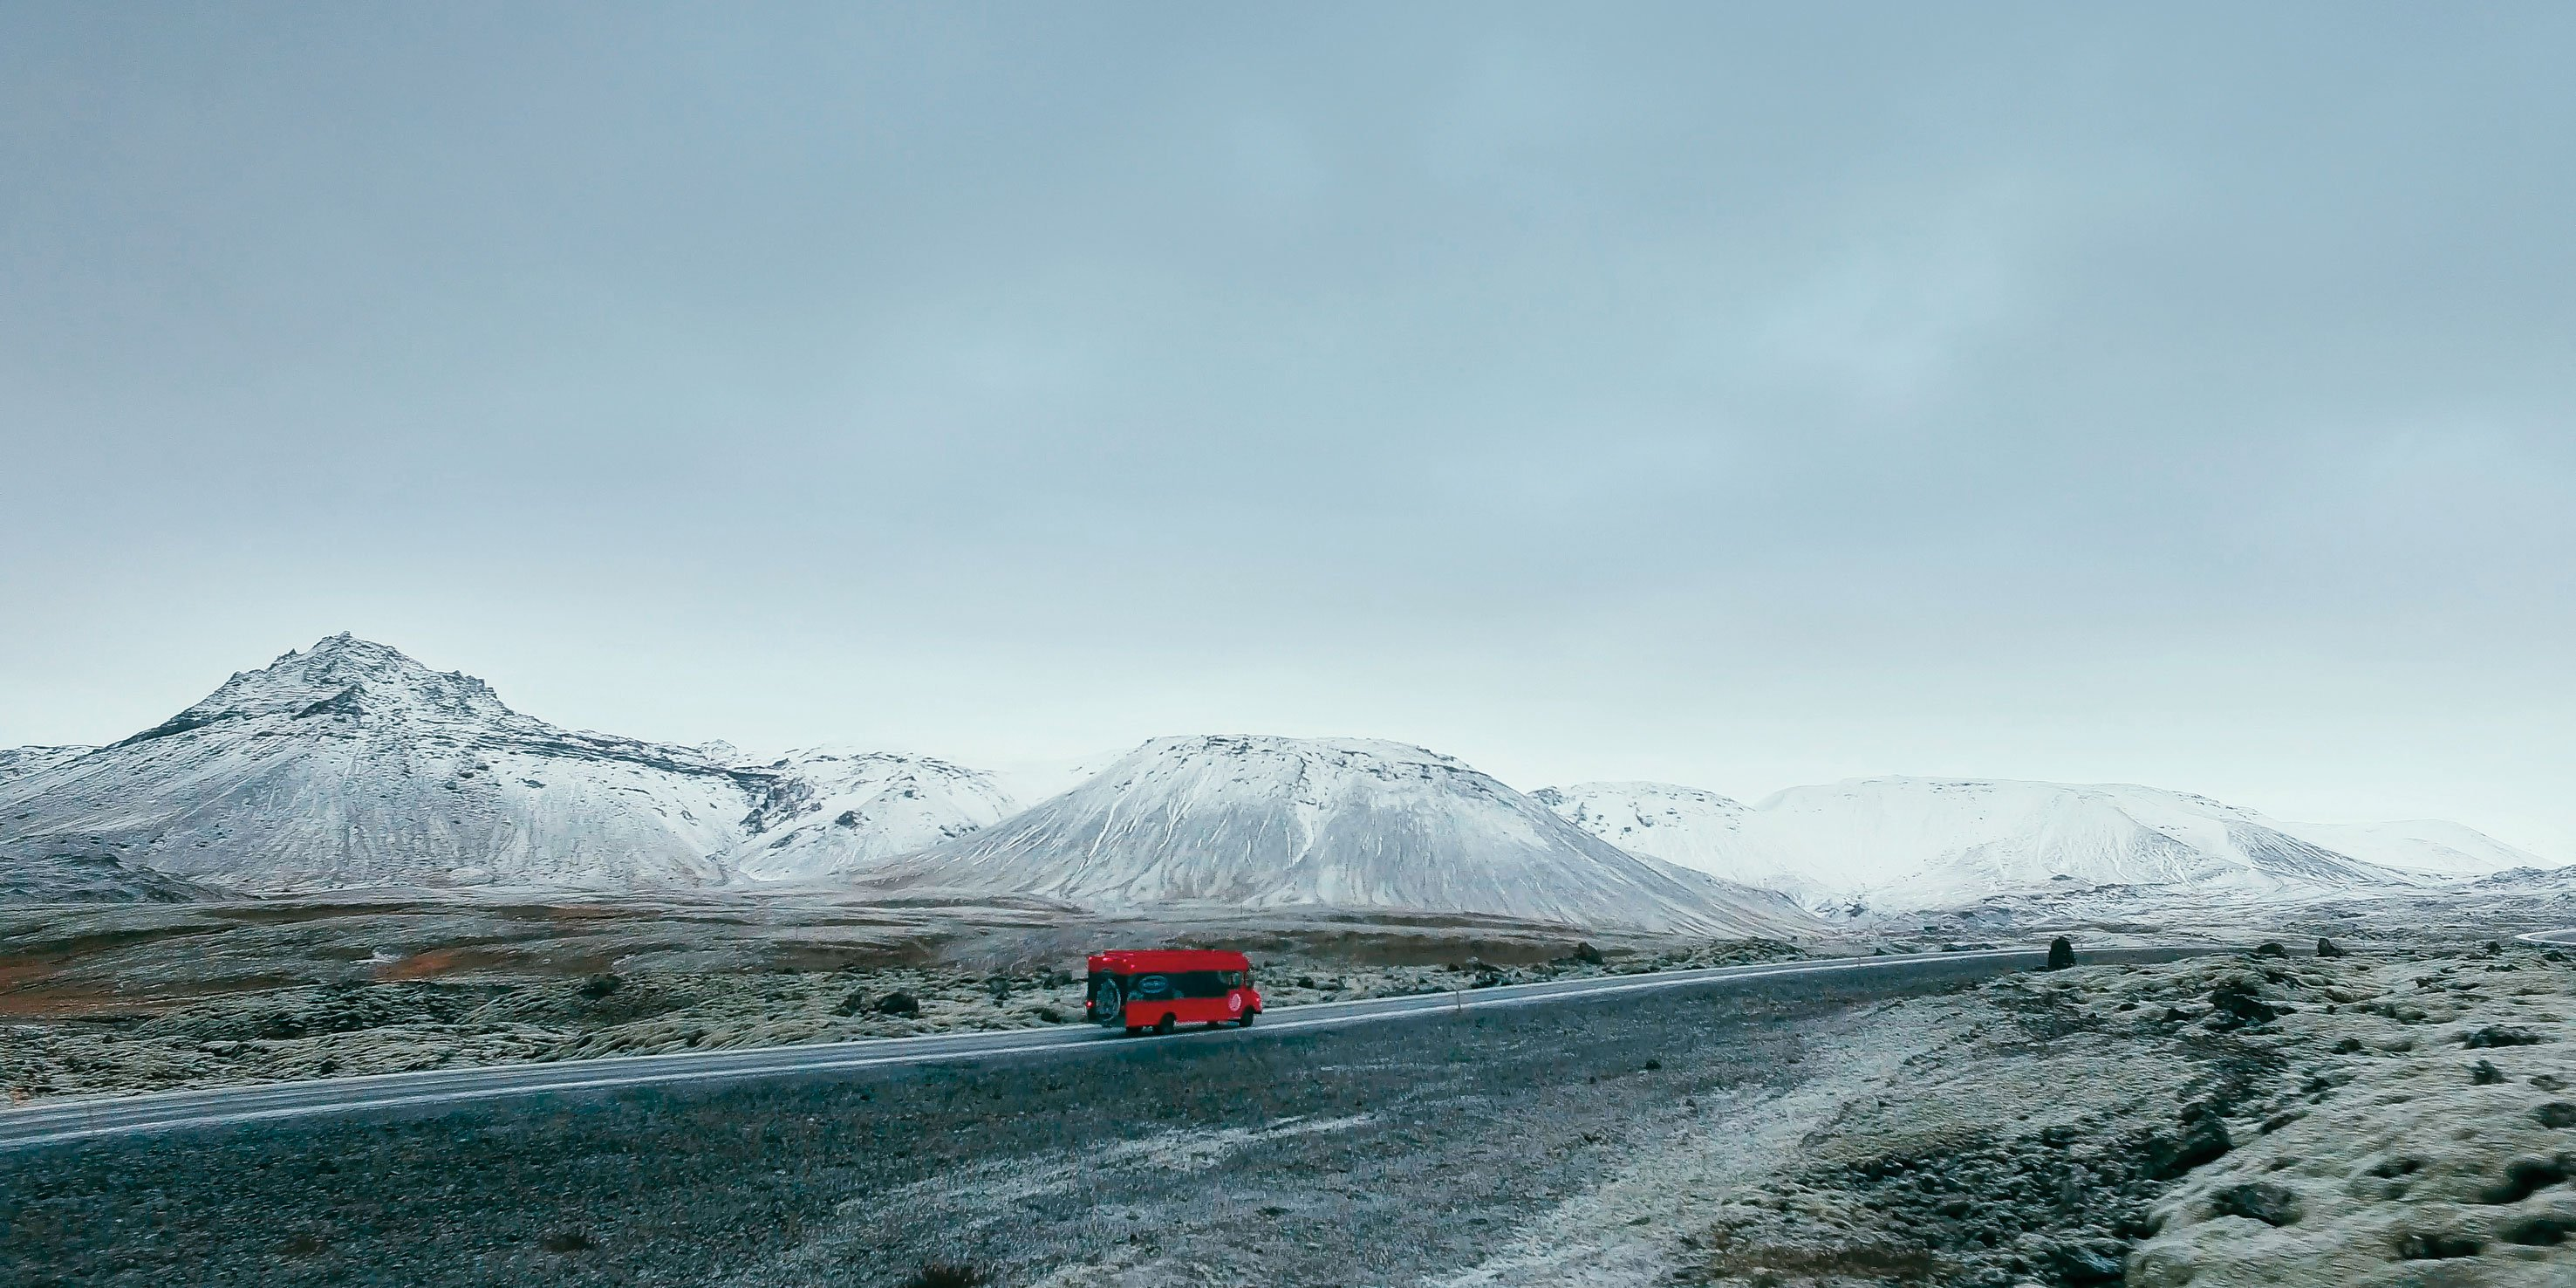 The Santa Maria food truck on the way to  a research station by a volcano in Iceland.